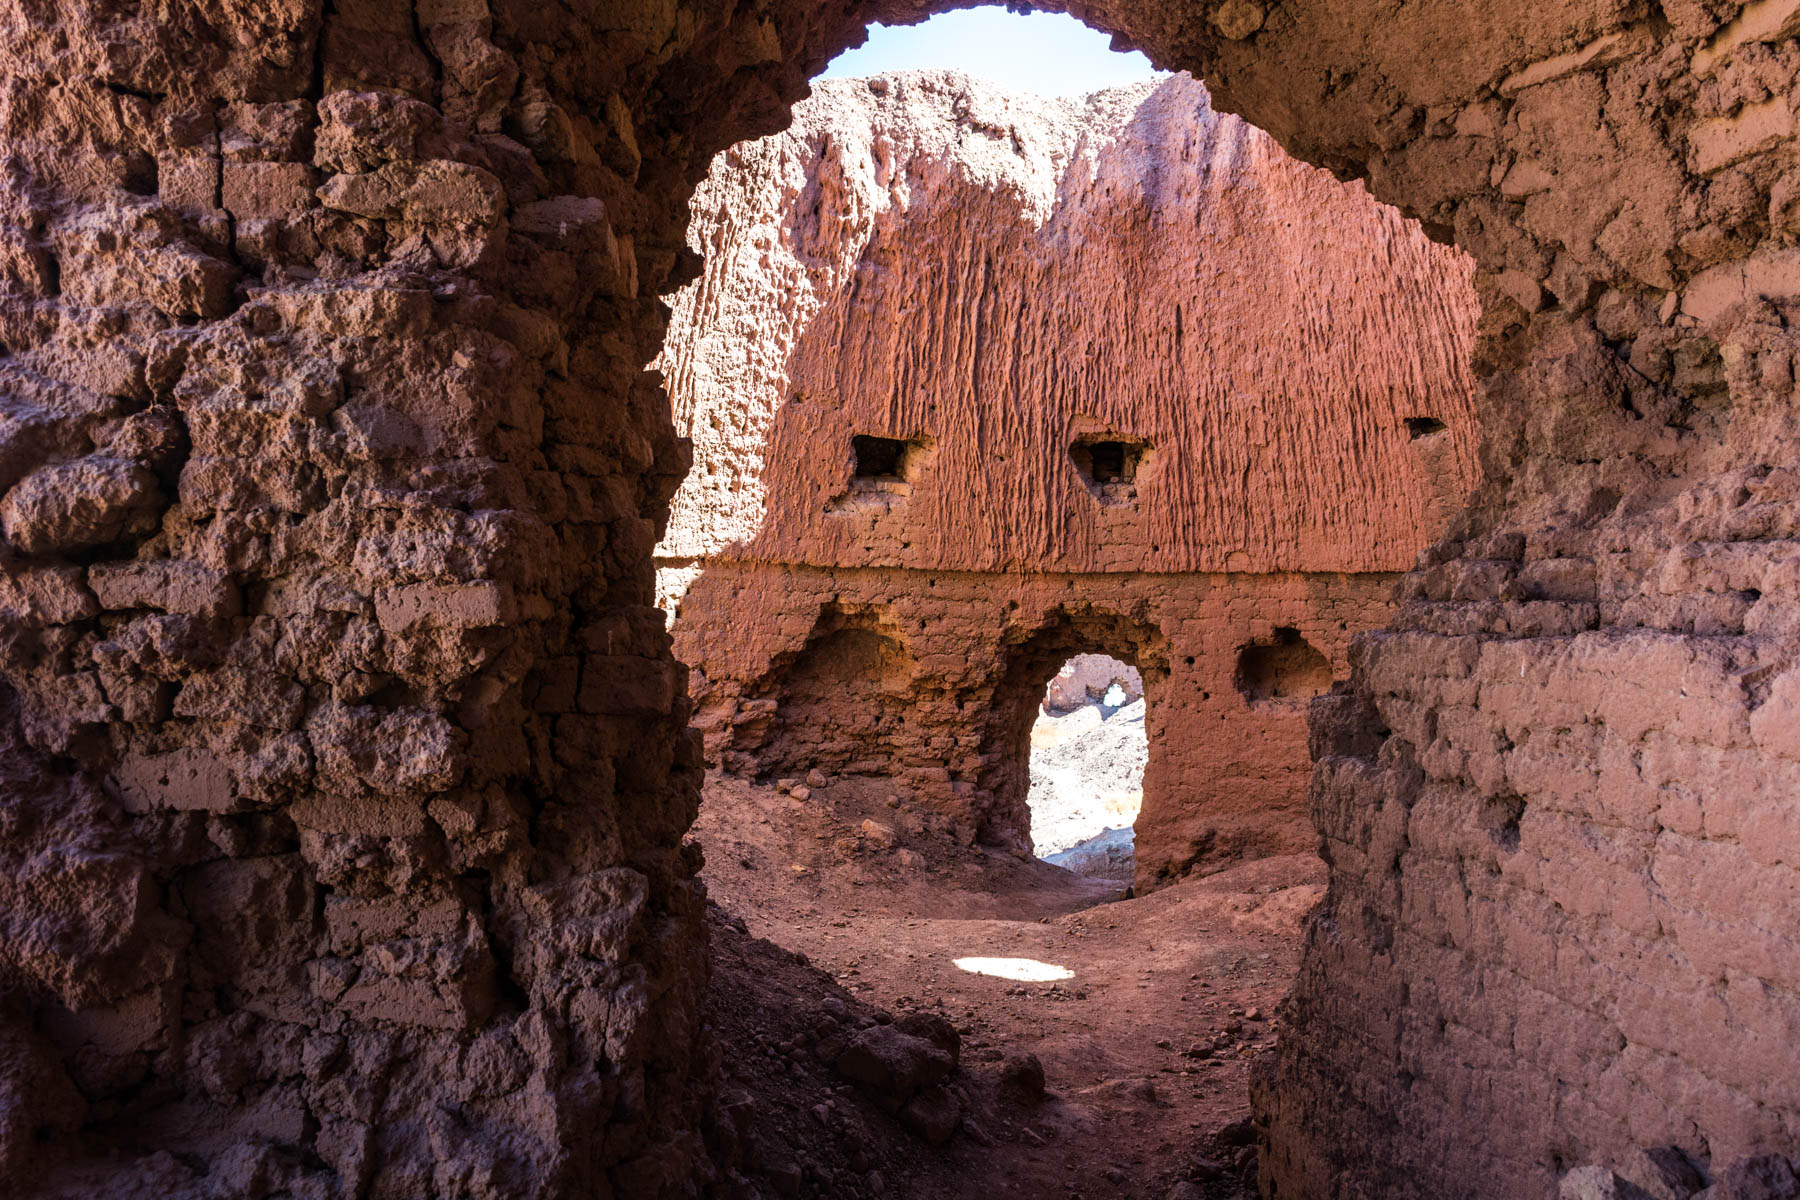 The red stone interior of the Shahr-e-Zohak citadel near Bamiyan, Afghanistan